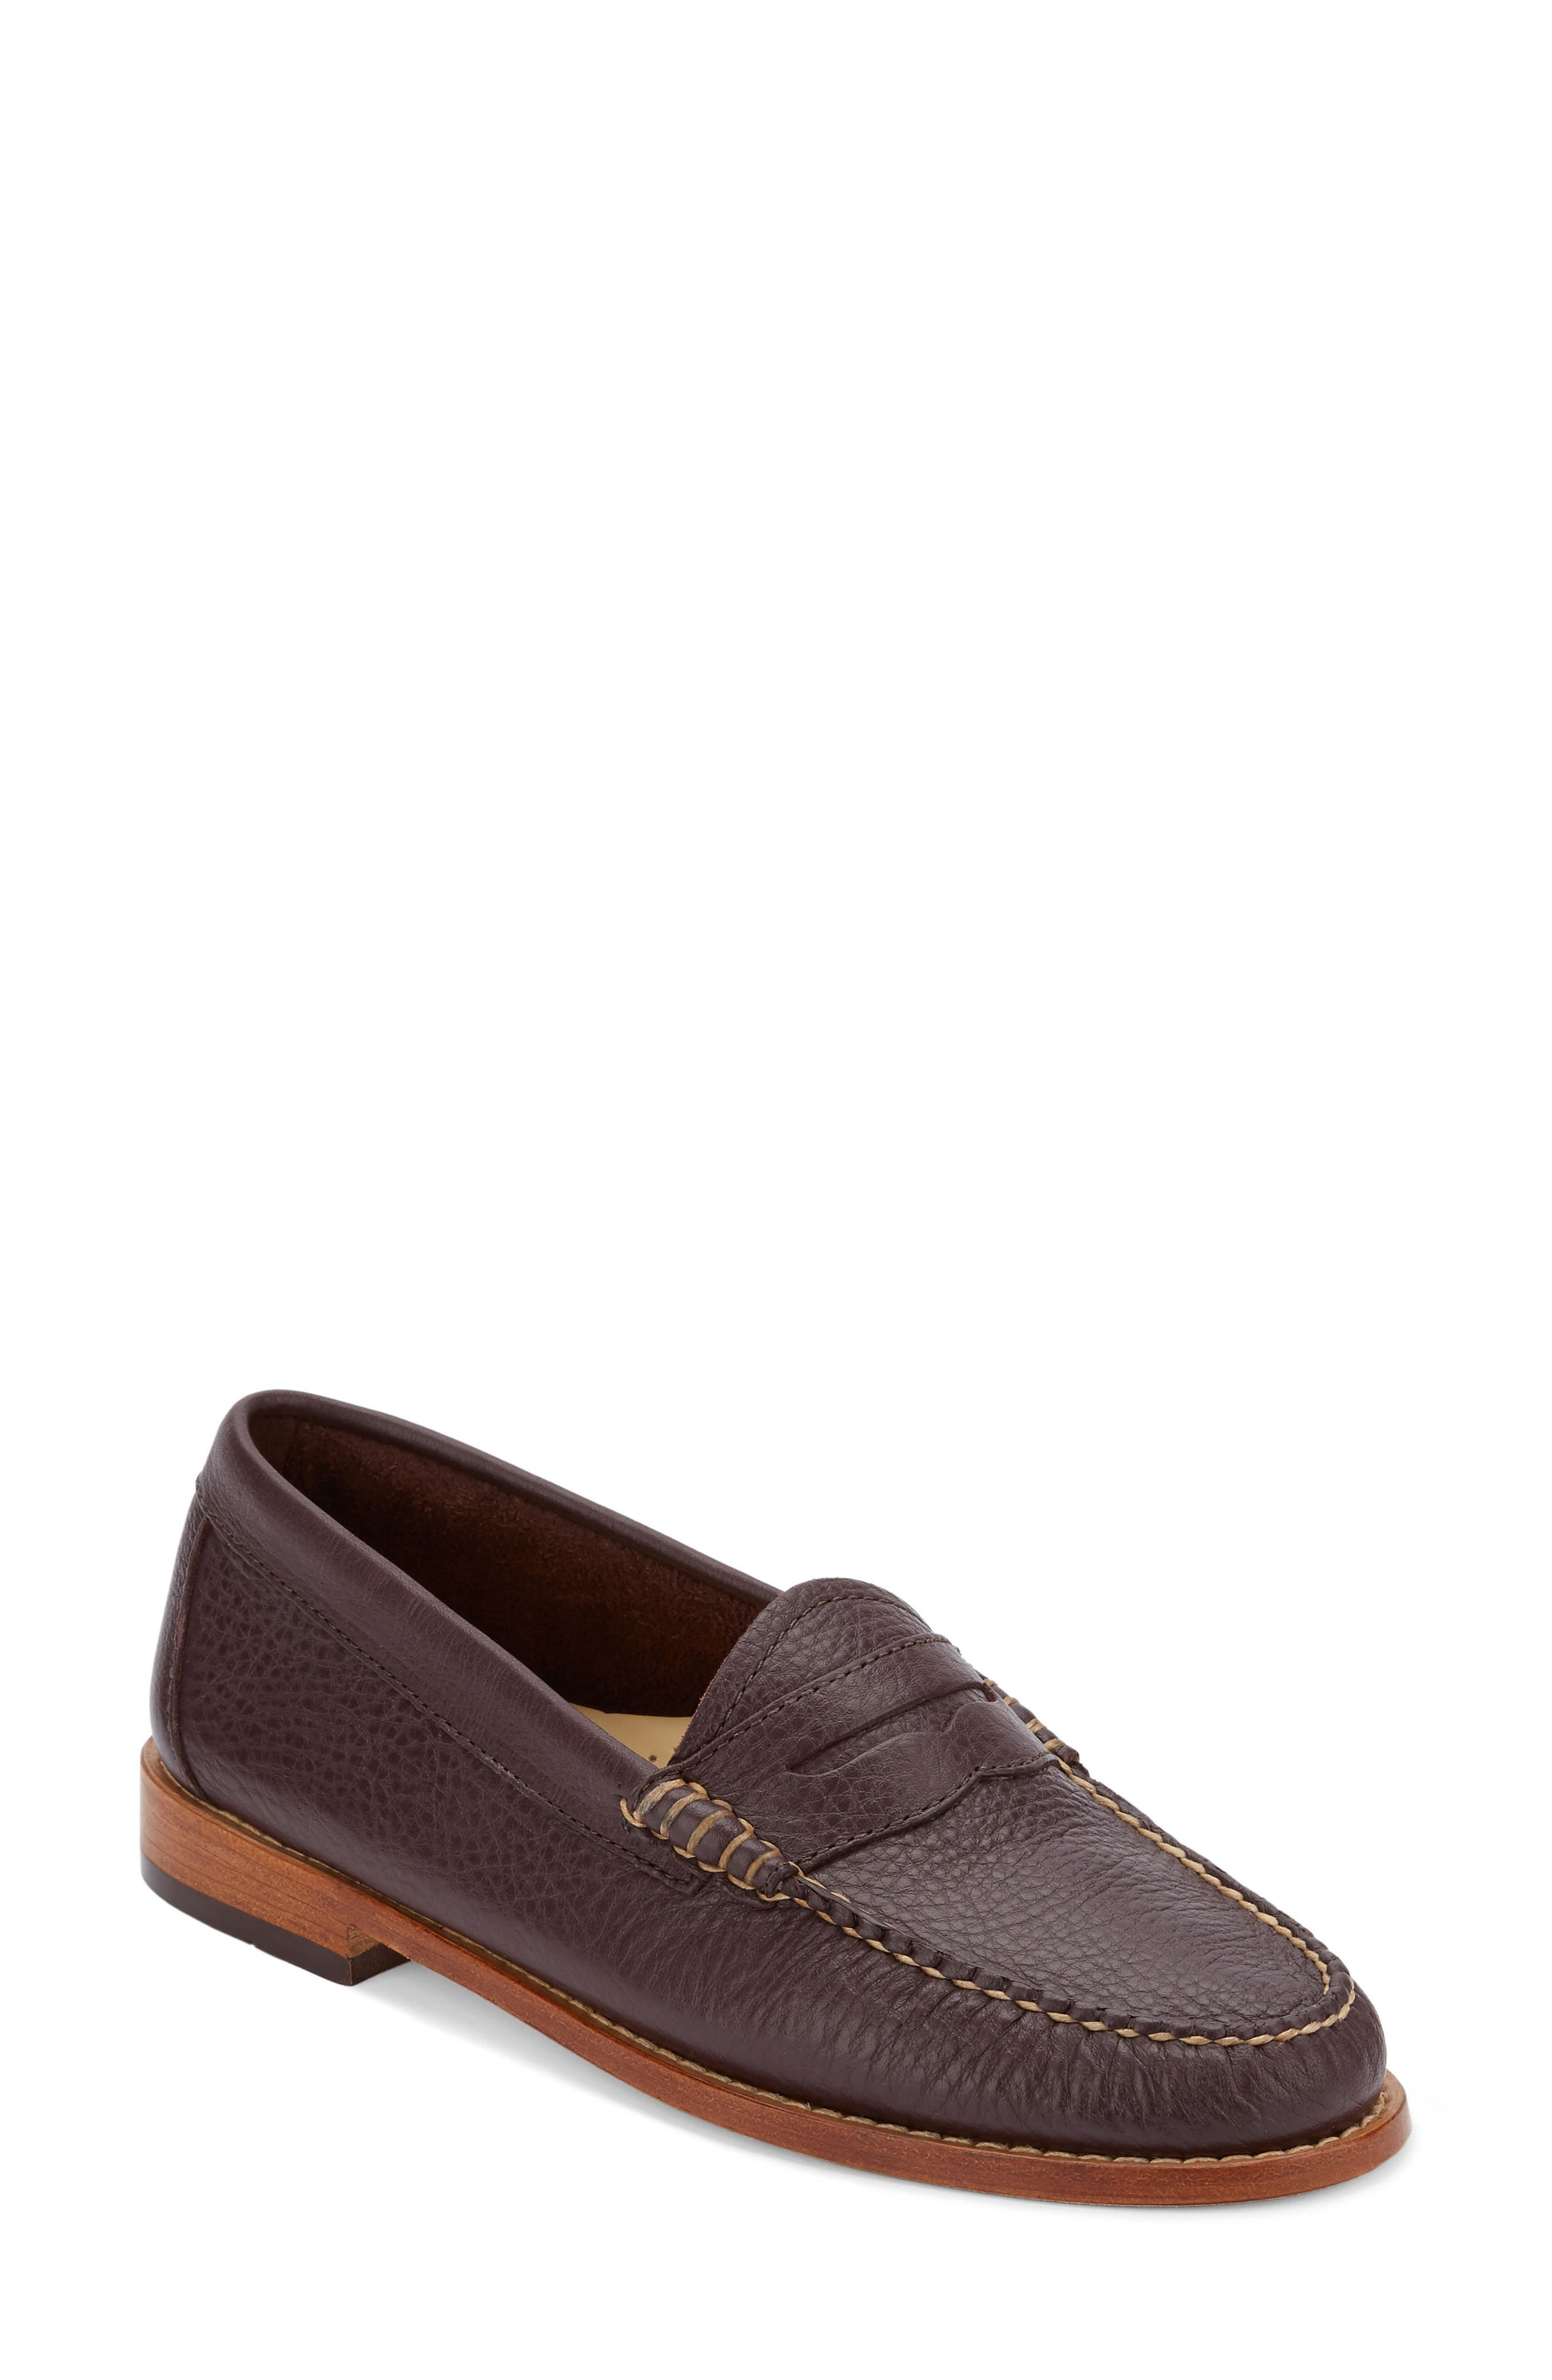 'Whitney' Loafer,                             Main thumbnail 10, color,